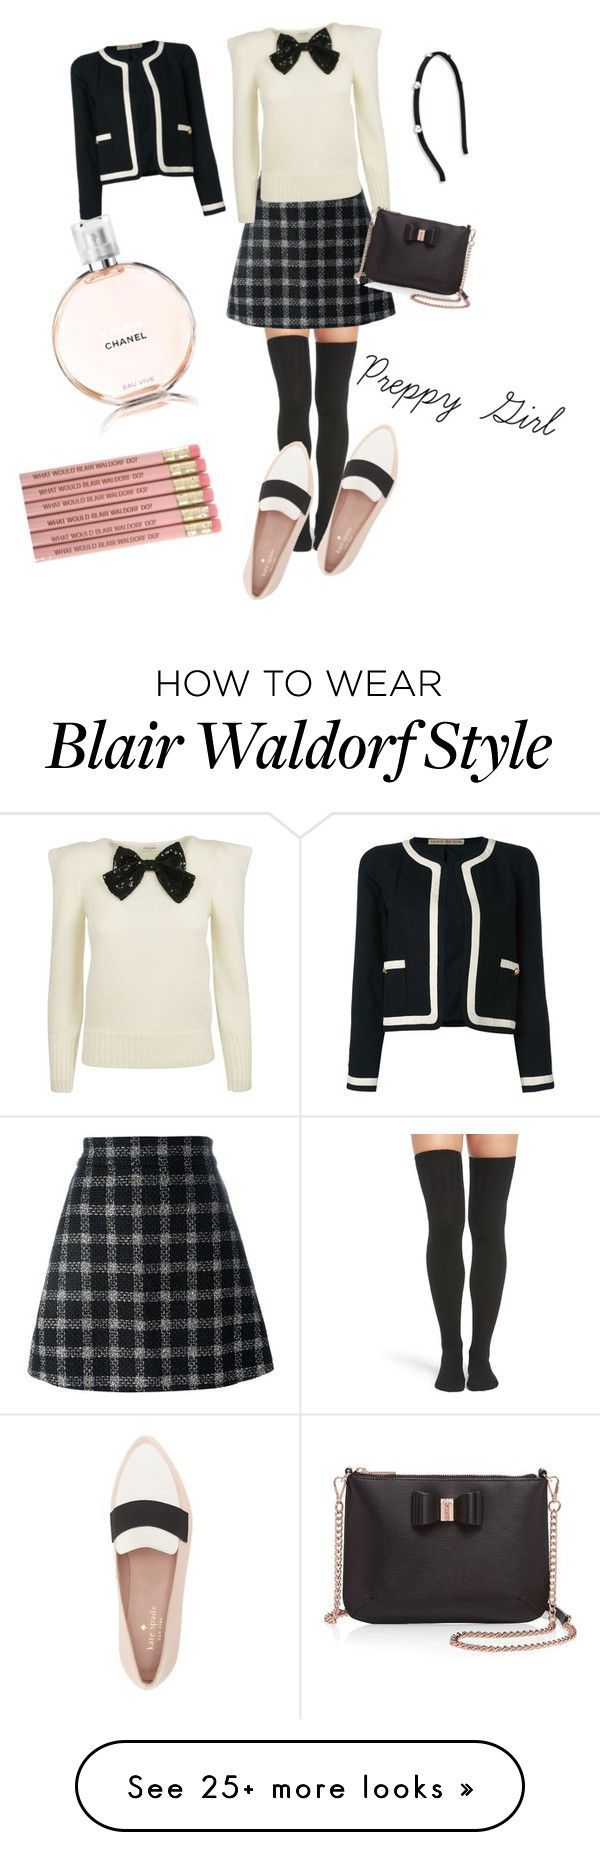 """""""My style ✨"""" by thepinkballettshoes on Polyvore featuring Peony & Moss, Gucci, Yves Saint Laurent, Kate Spade, Ted Baker, Salvatore Ferragamo and Chanel"""